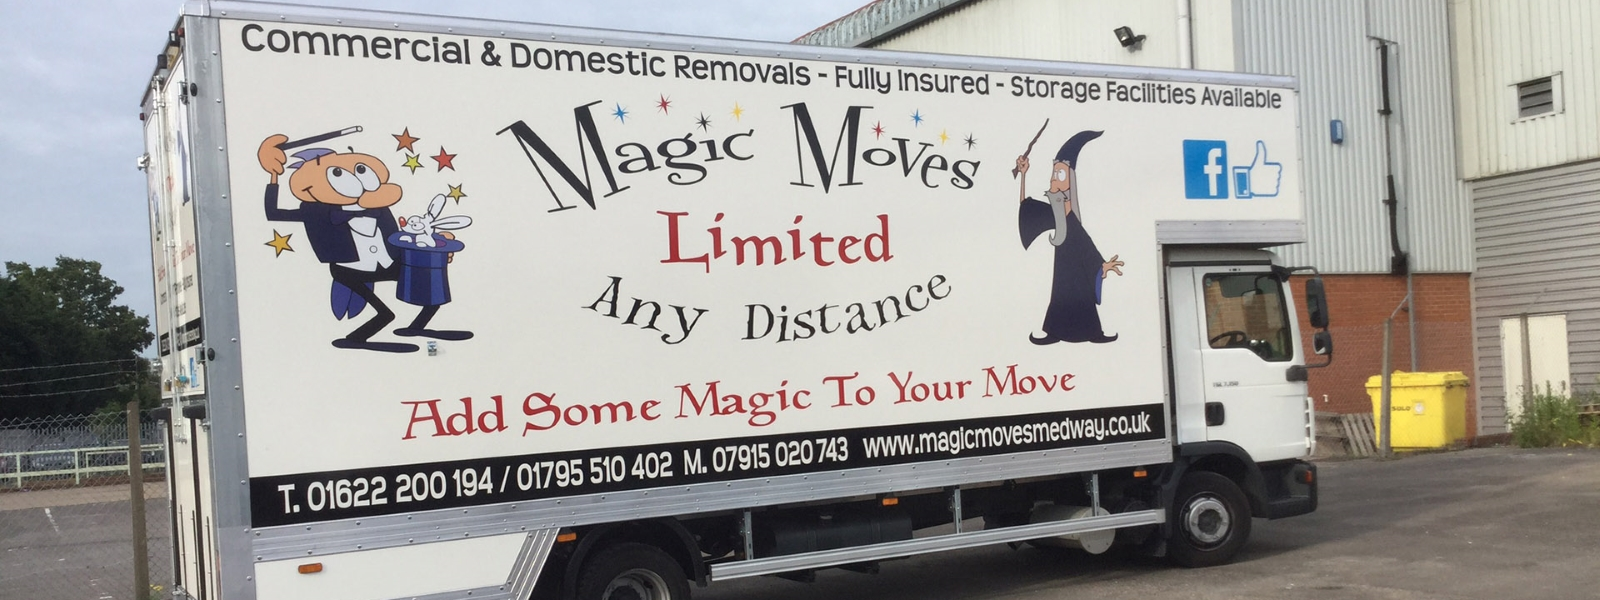 Magic Moves make it so much easier